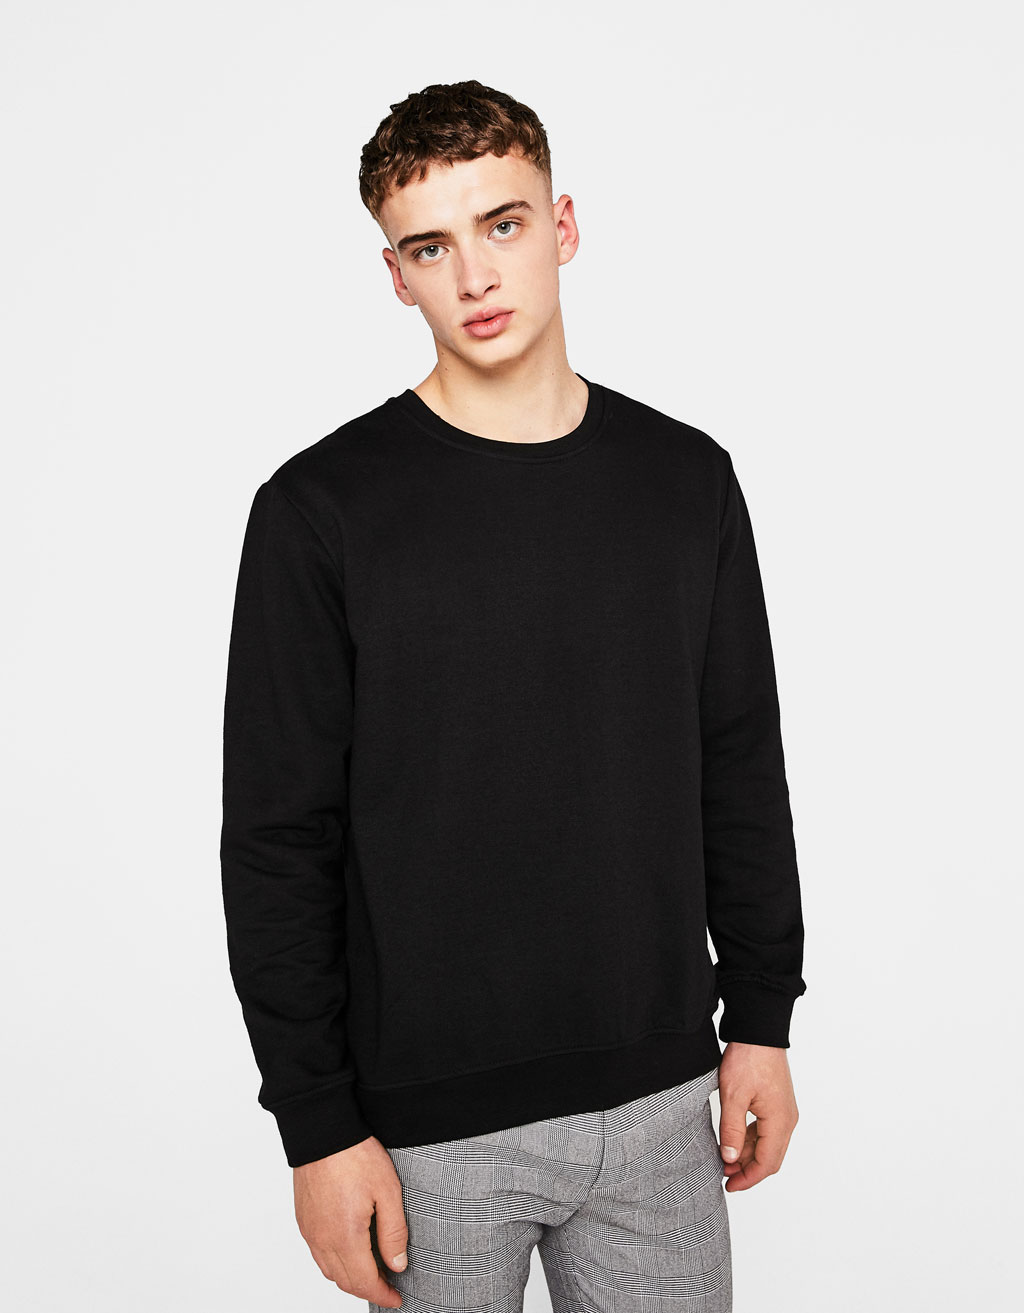 Sweatshirt with elastic waist and cuffs